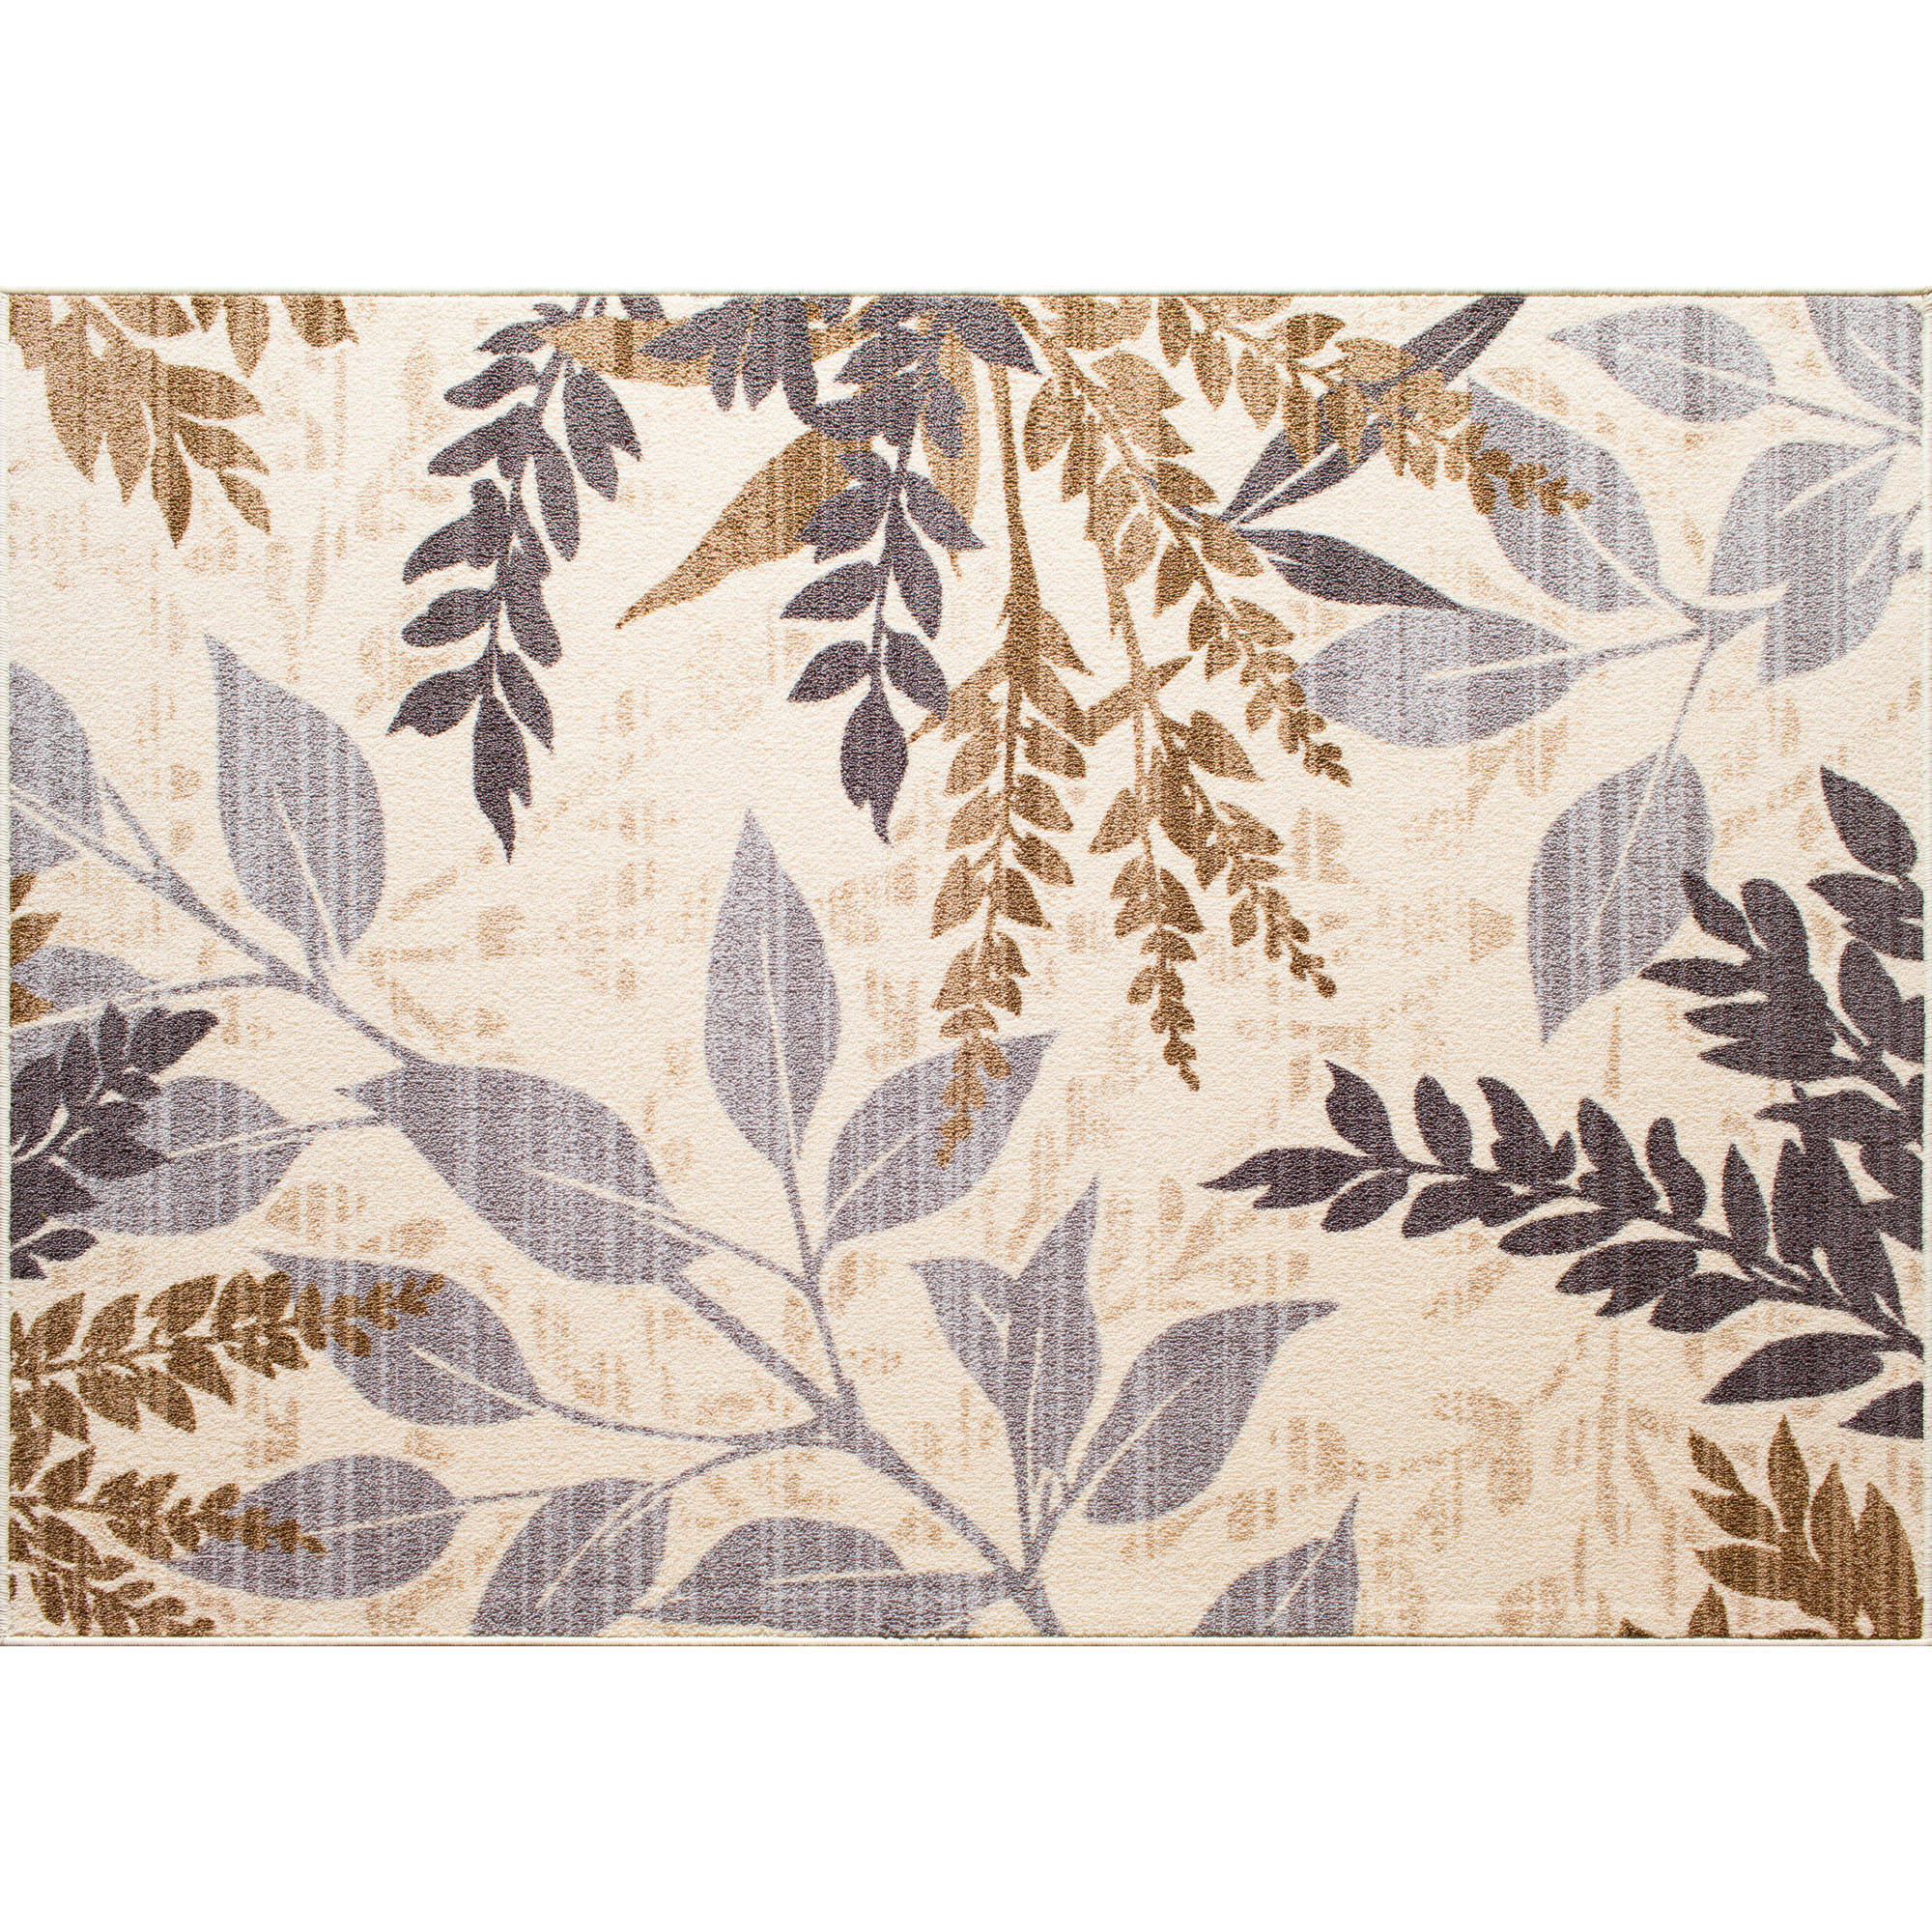 Mainstays Orianna Area Rug, Neutral